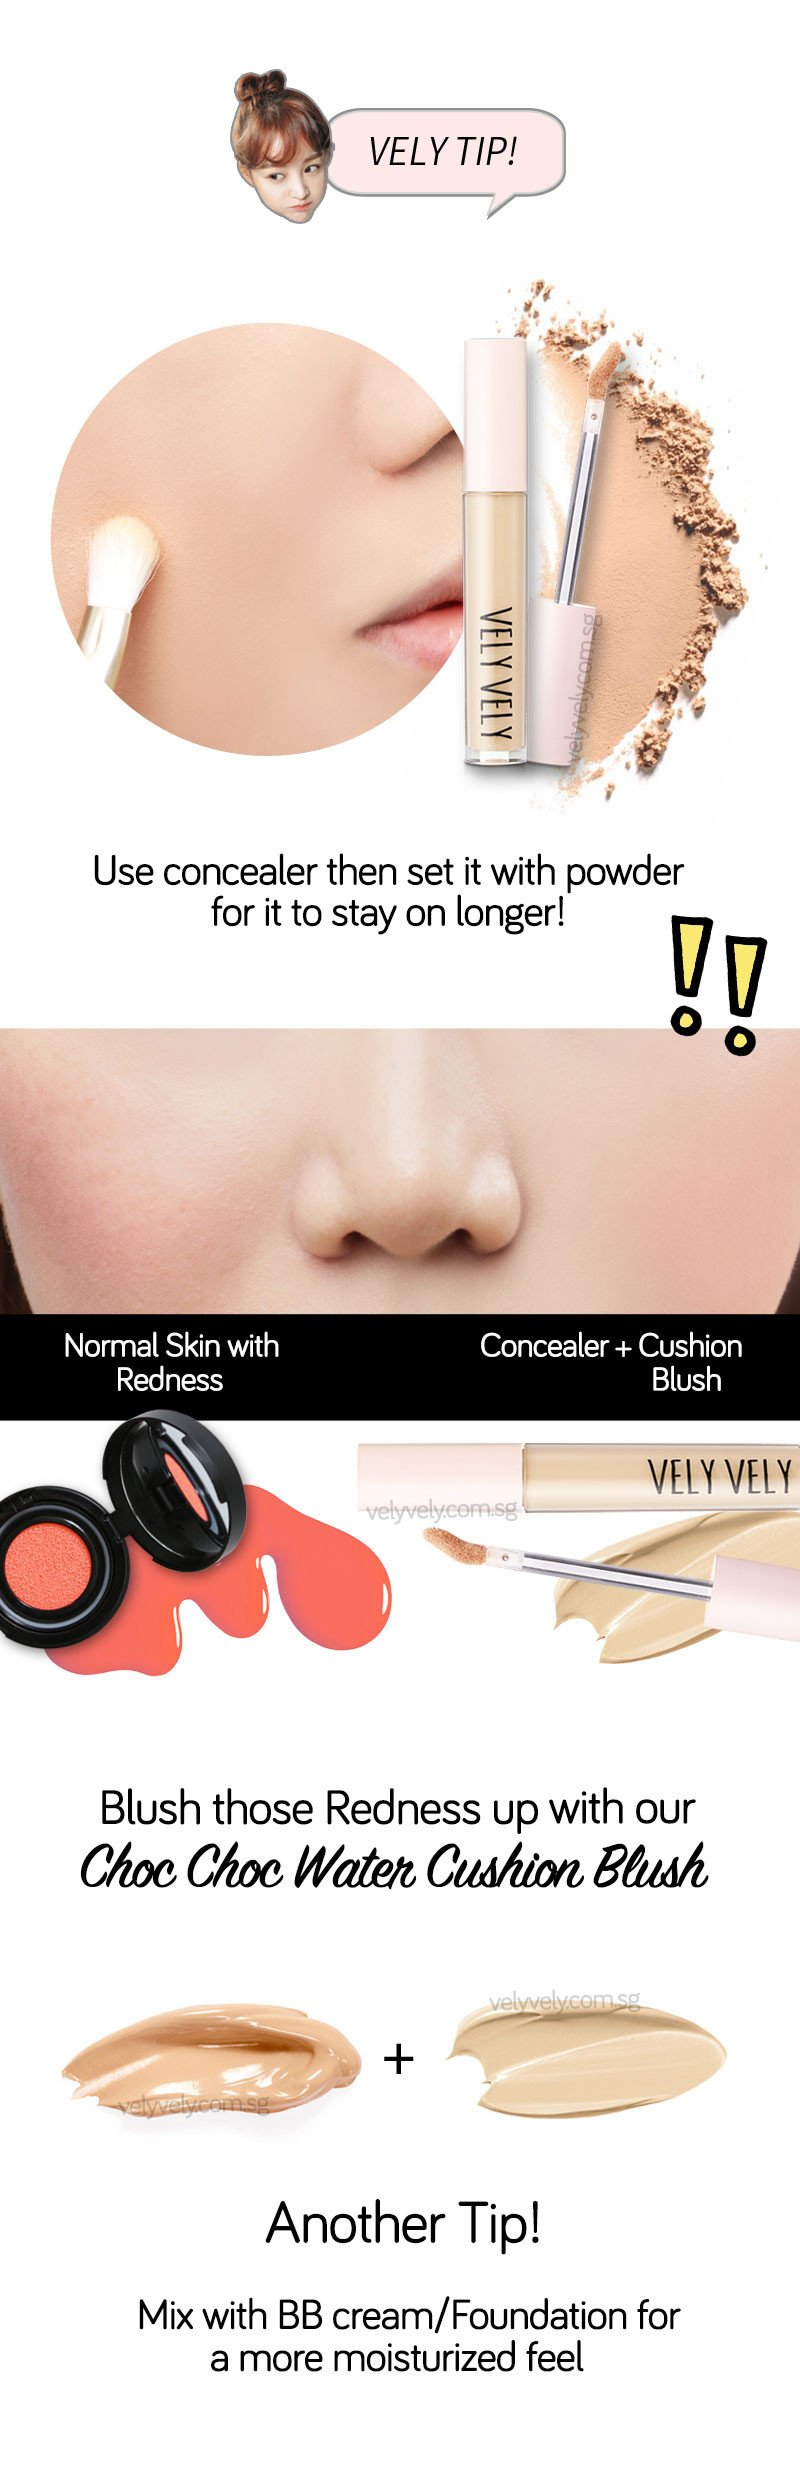 Here's some tips when using the IM Custom Complete Mascara by velyvely.com.sg